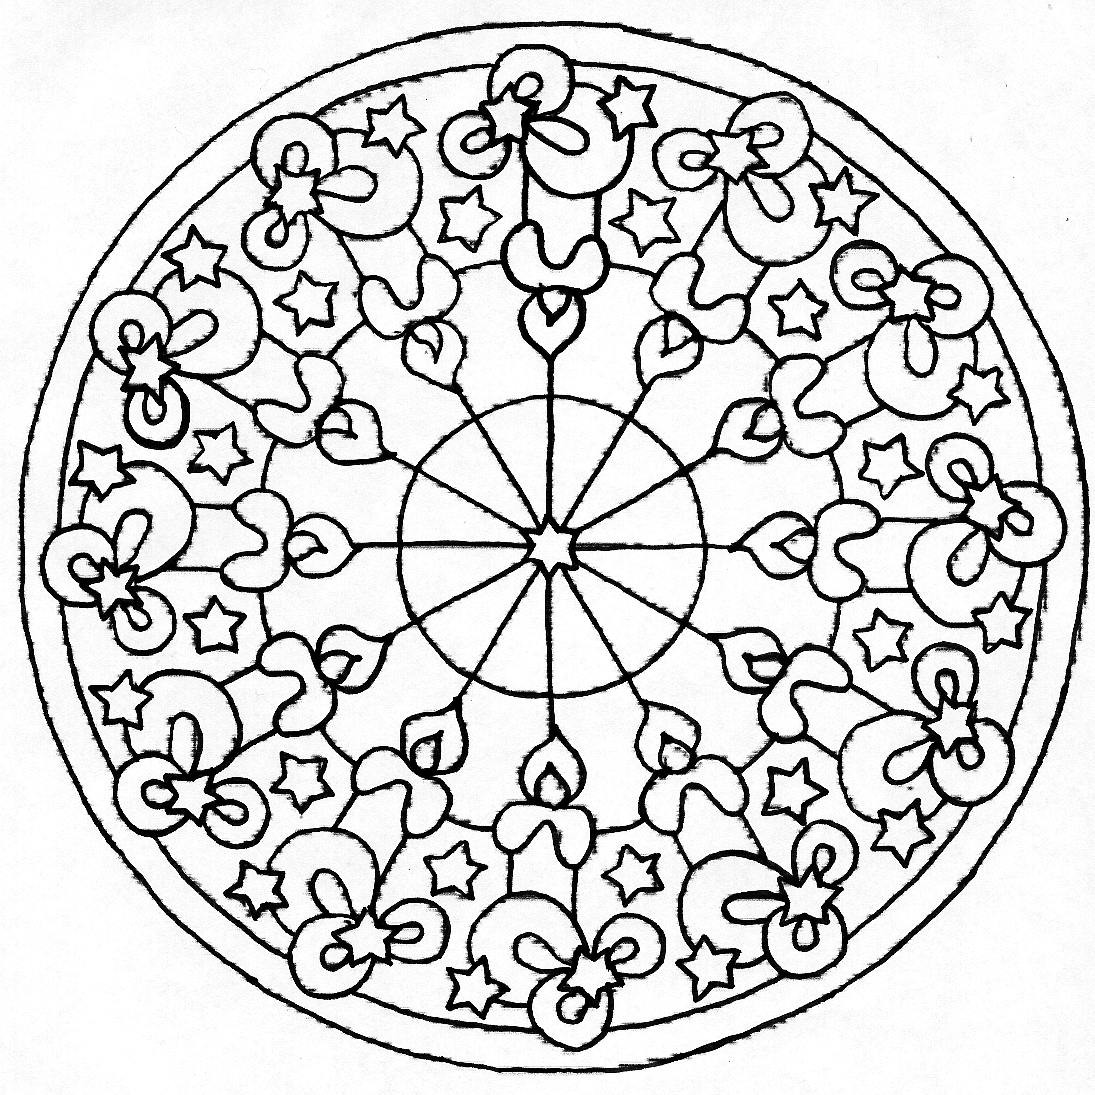 30 Easy Mandalas For Beginners Adult Coloring Book Sacred Mandala Designs And P